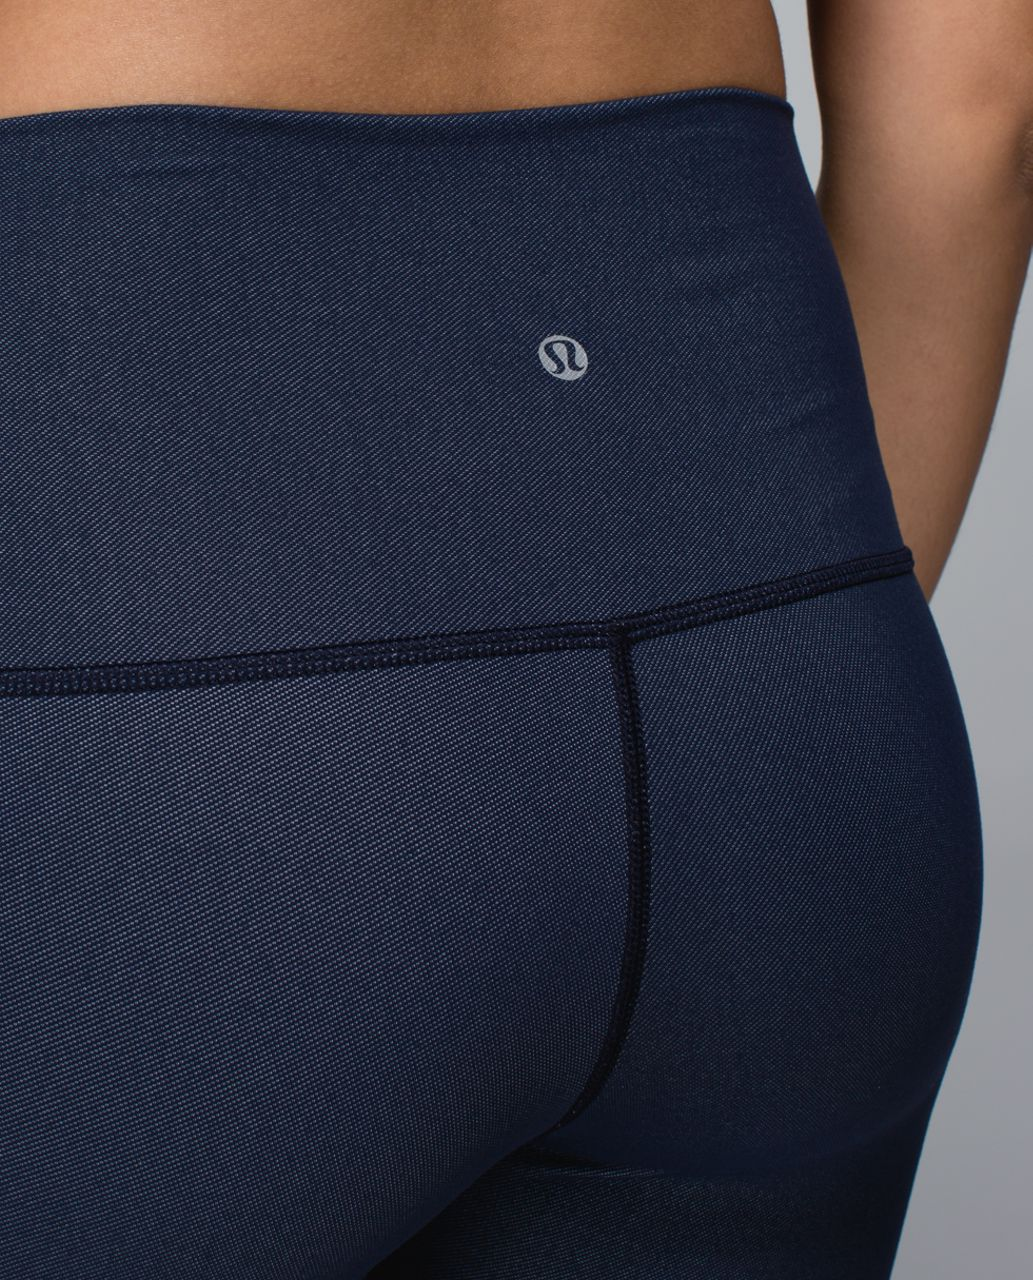 Lululemon Wunder Under Pant (Roll Down) - Inkwell